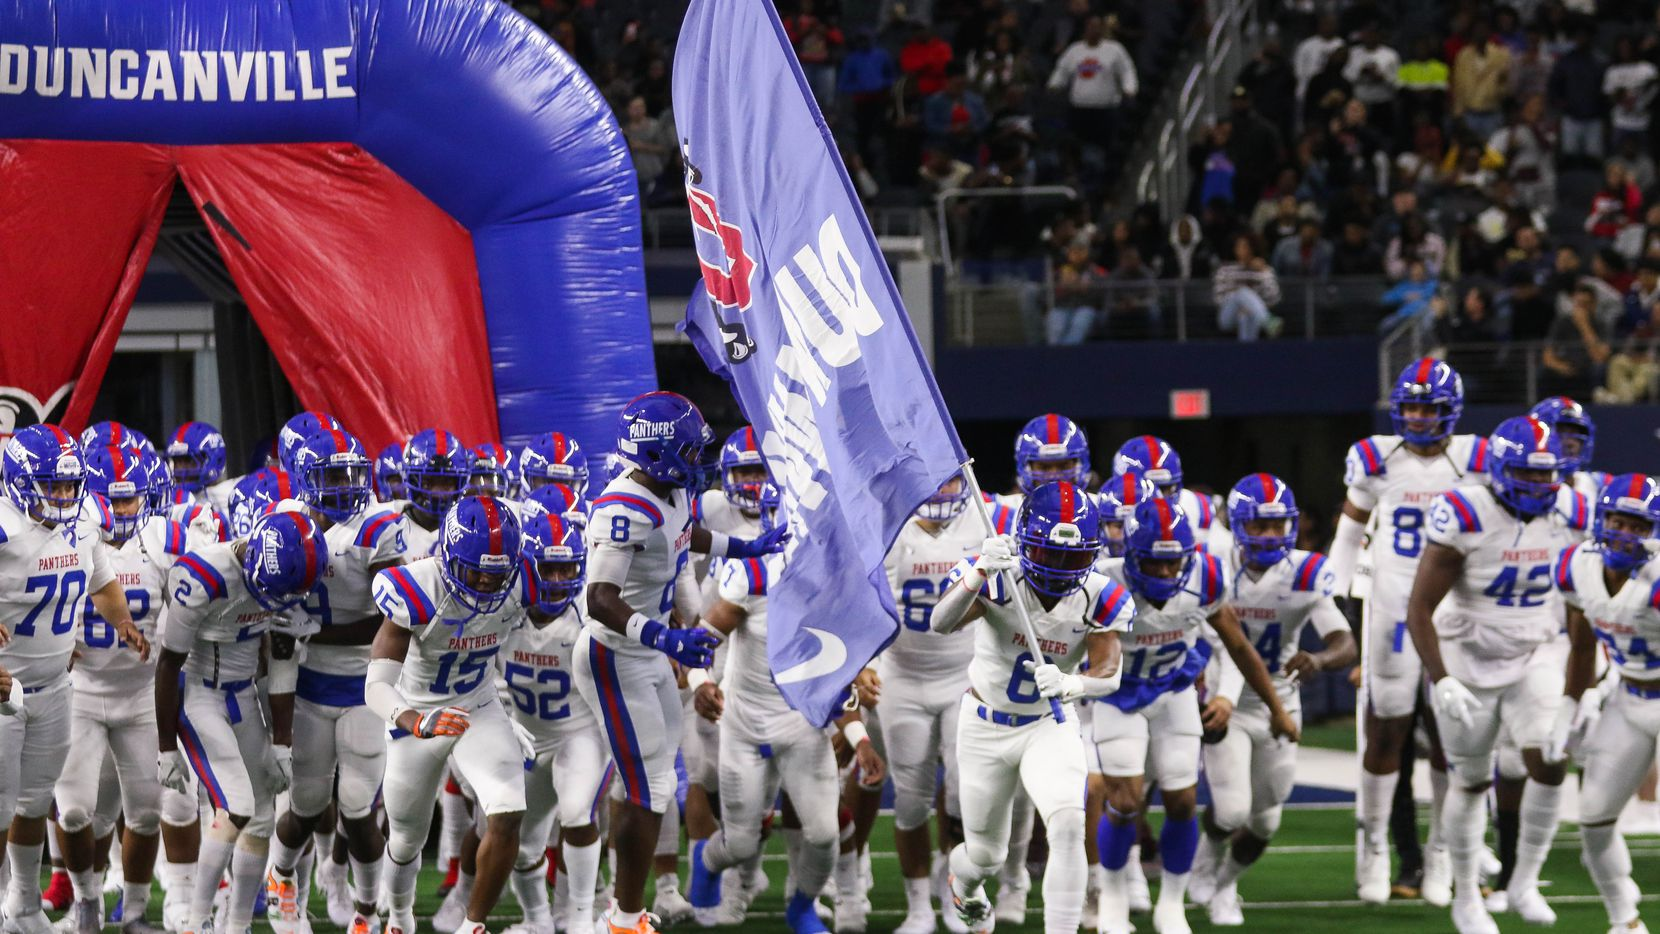 Duncanville Vs North Shore State Title Game Had Larger Crowd Than 69 Of College Bowl Games